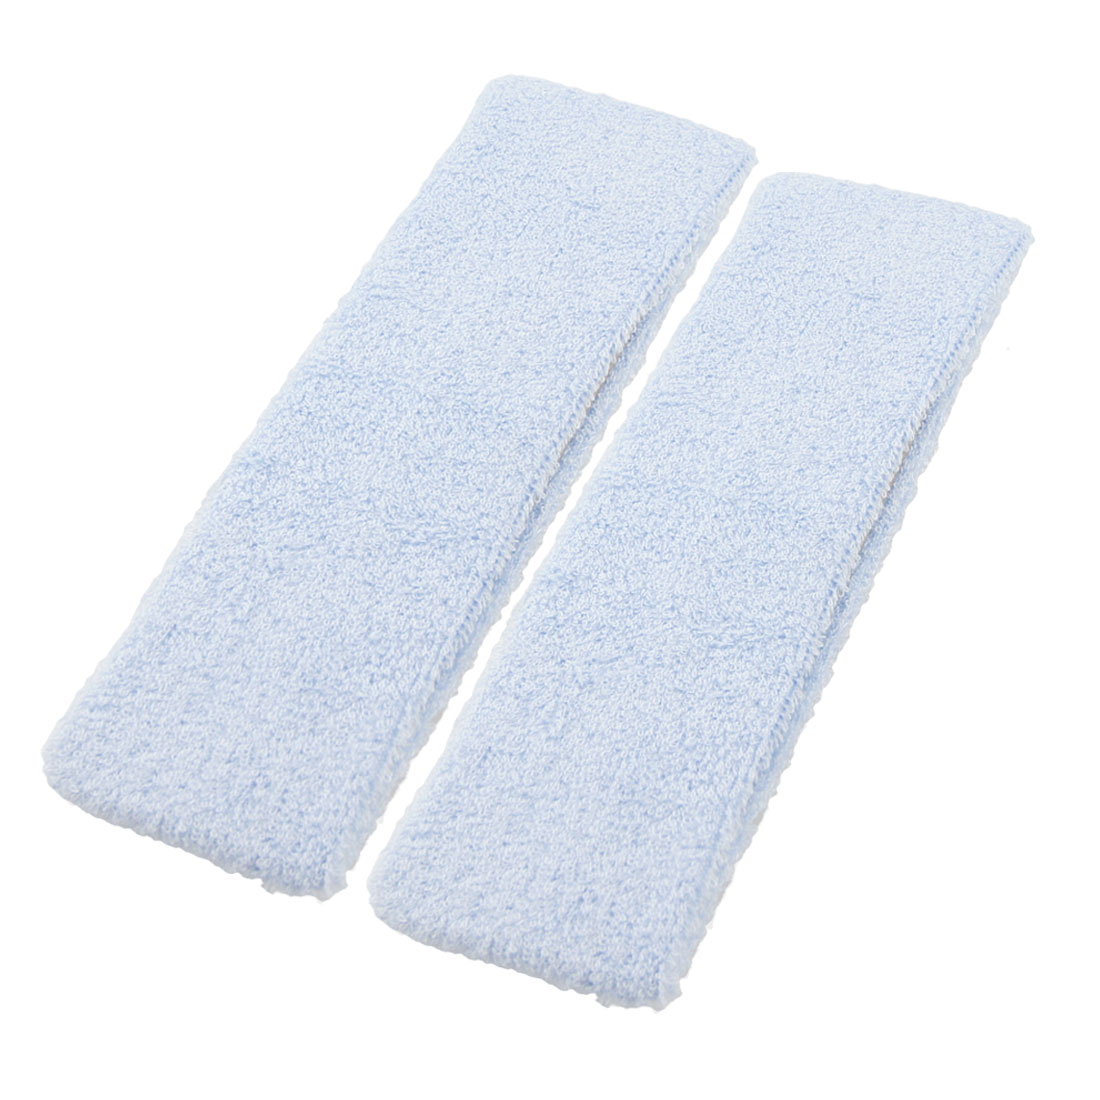 2 Pcs Pale Blue Outdoor Sports Sweatproof Hair Band Sweatband